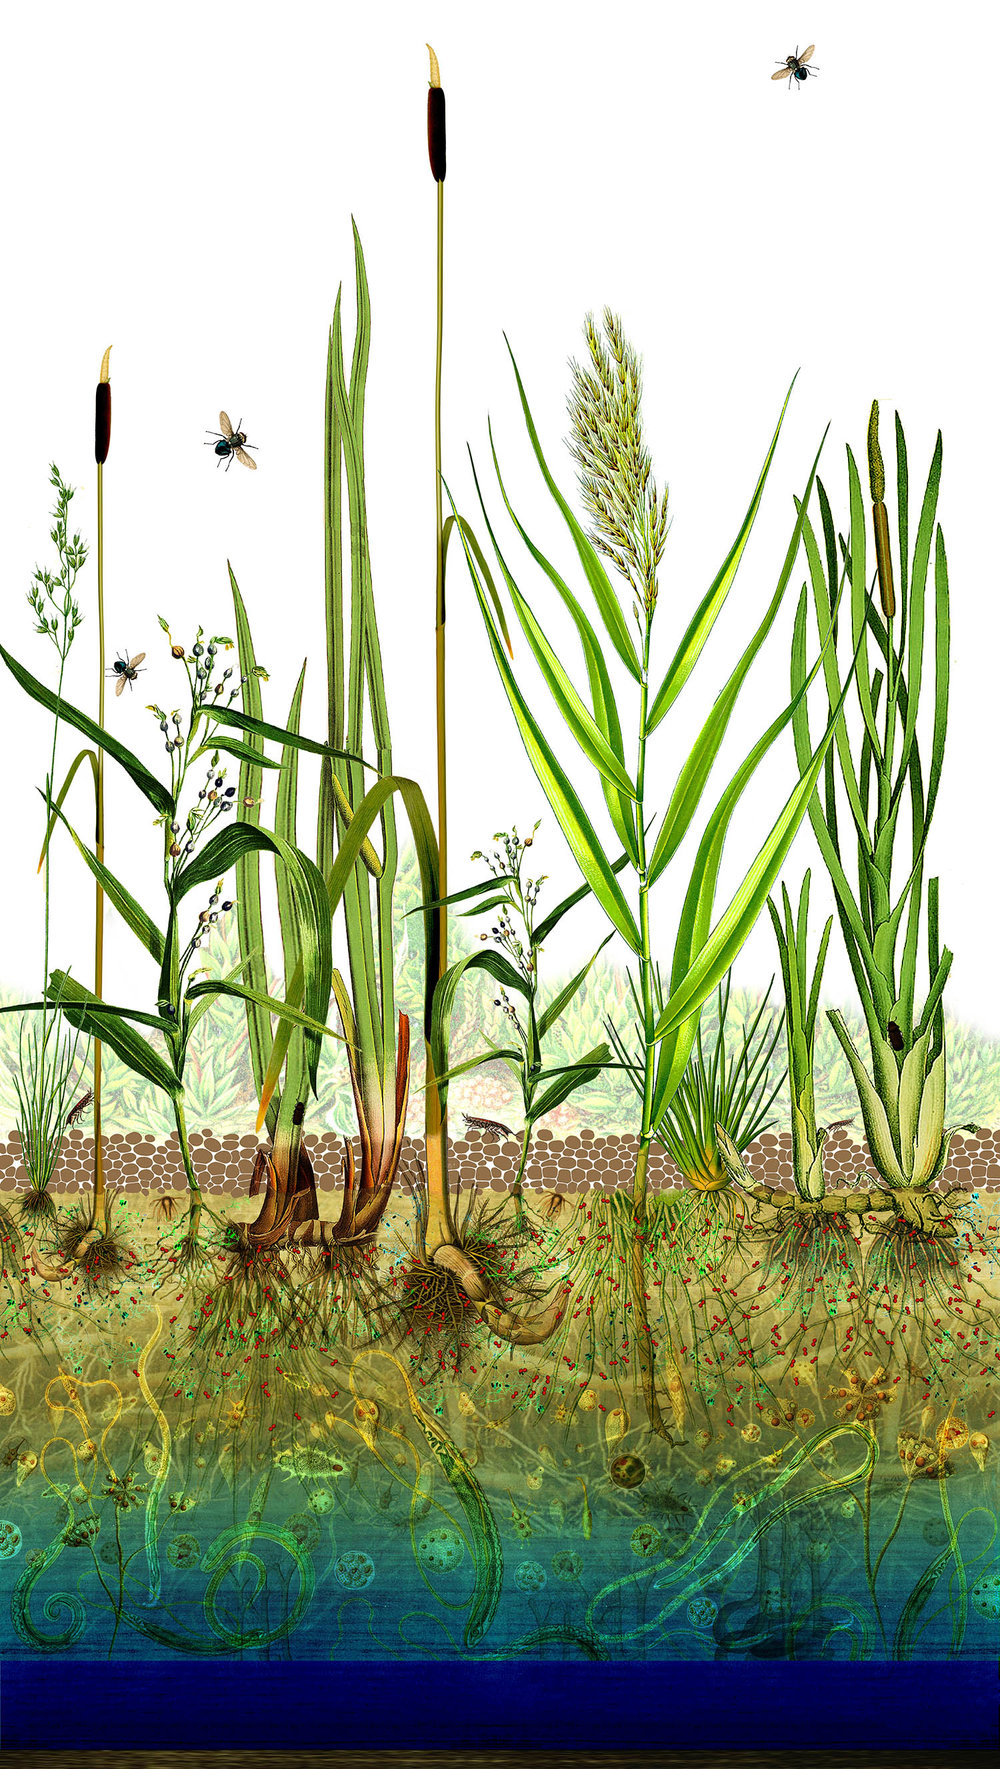 WHAT ARE CONSTRUCTED WETLANDS?